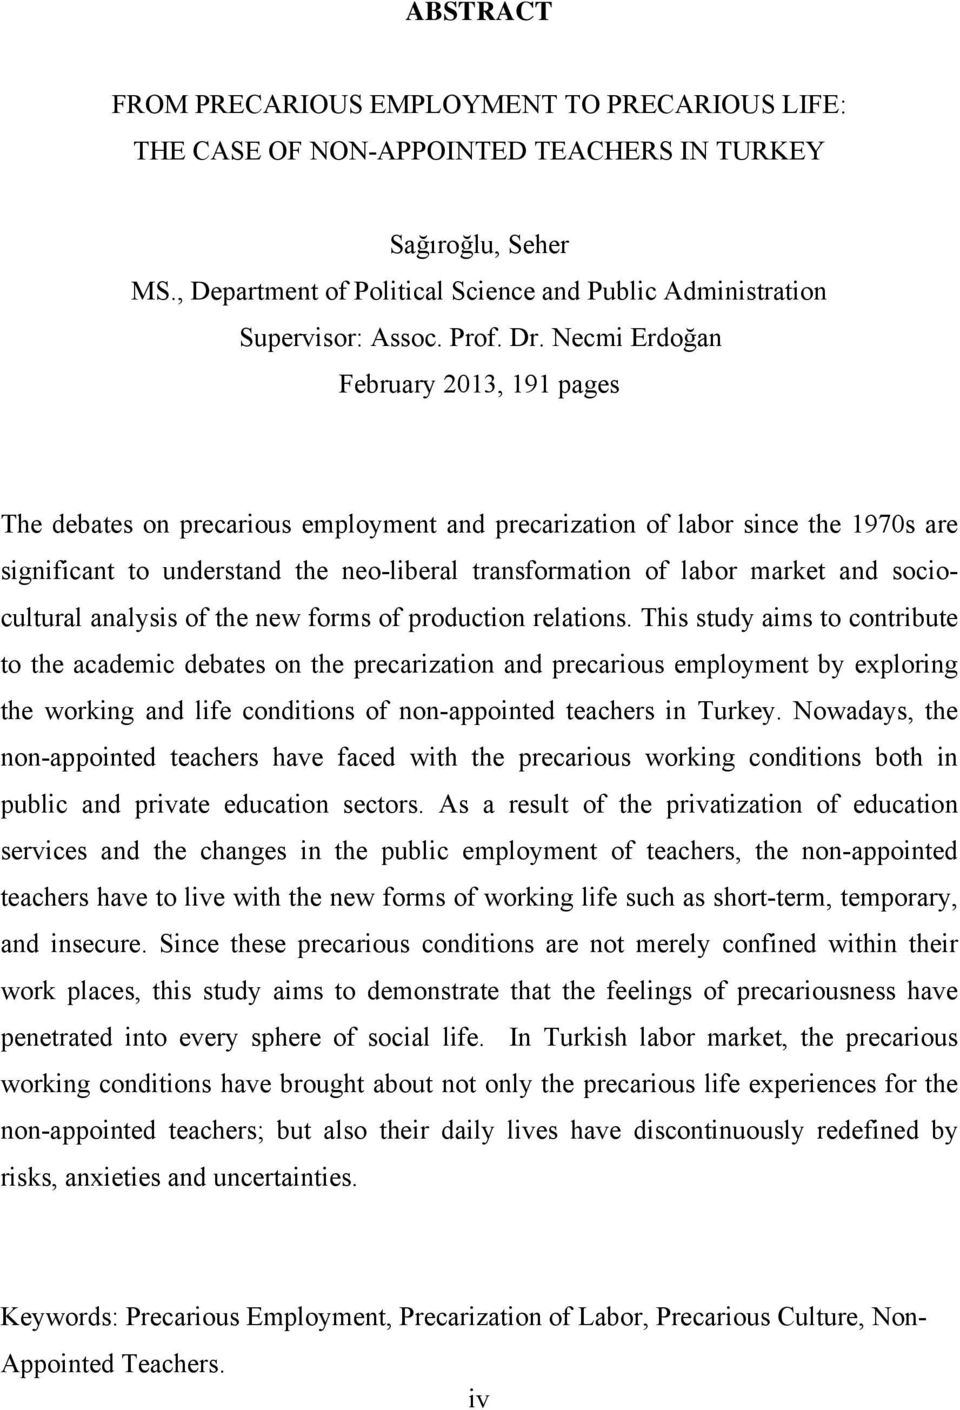 Necmi Erdoğan February 2013, 191 pages The debates on precarious employment and precarization of labor since the 1970s are significant to understand the neo-liberal transformation of labor market and